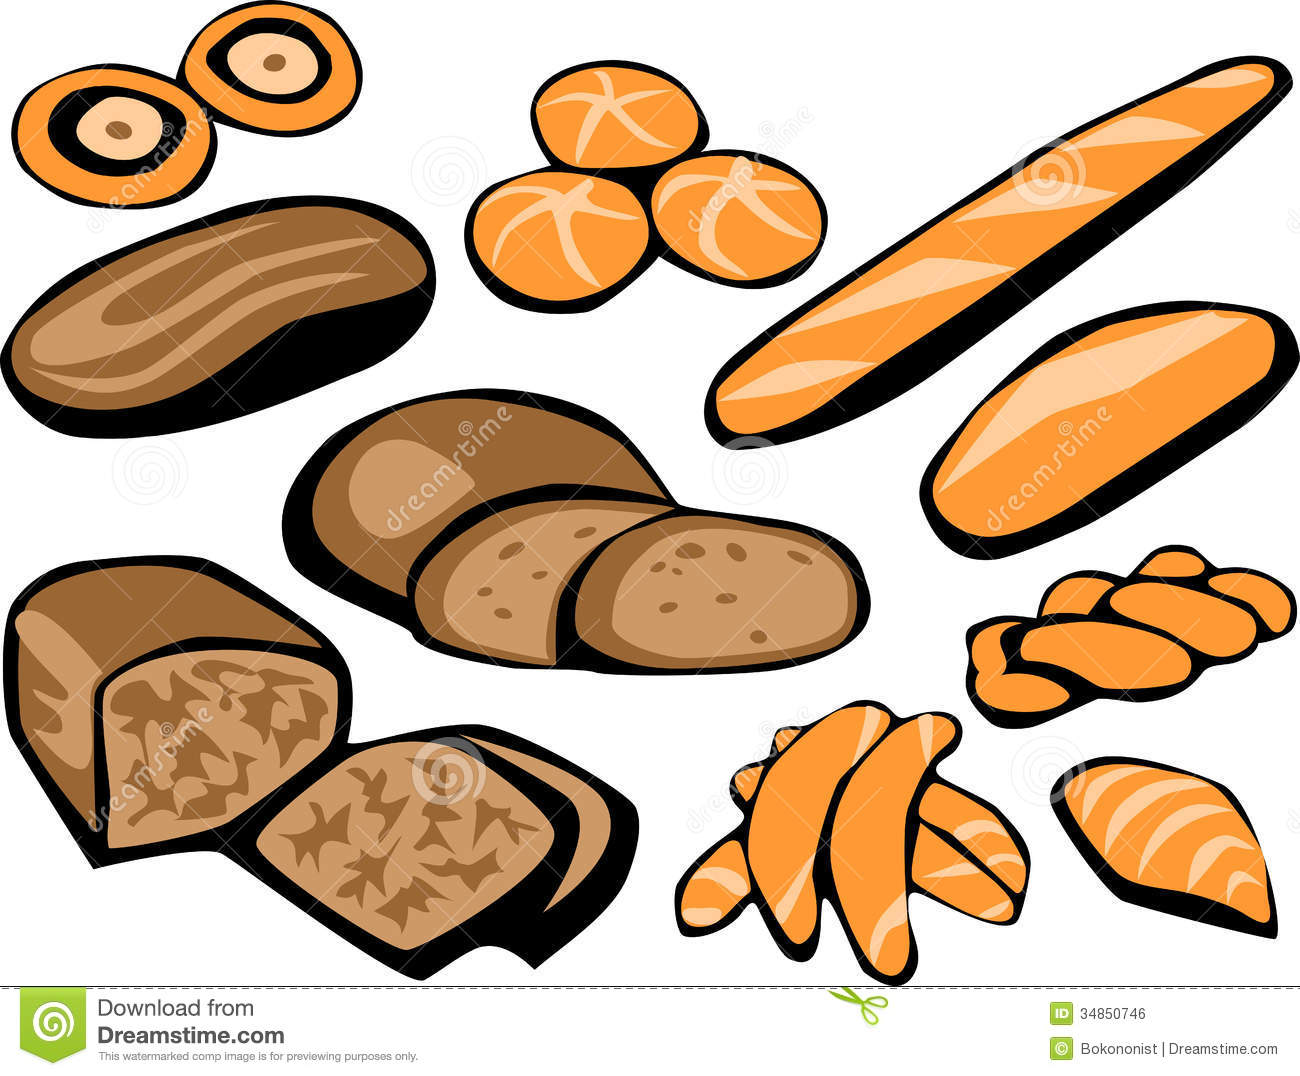 Cliparts free download best. Bakery clipart bakery item